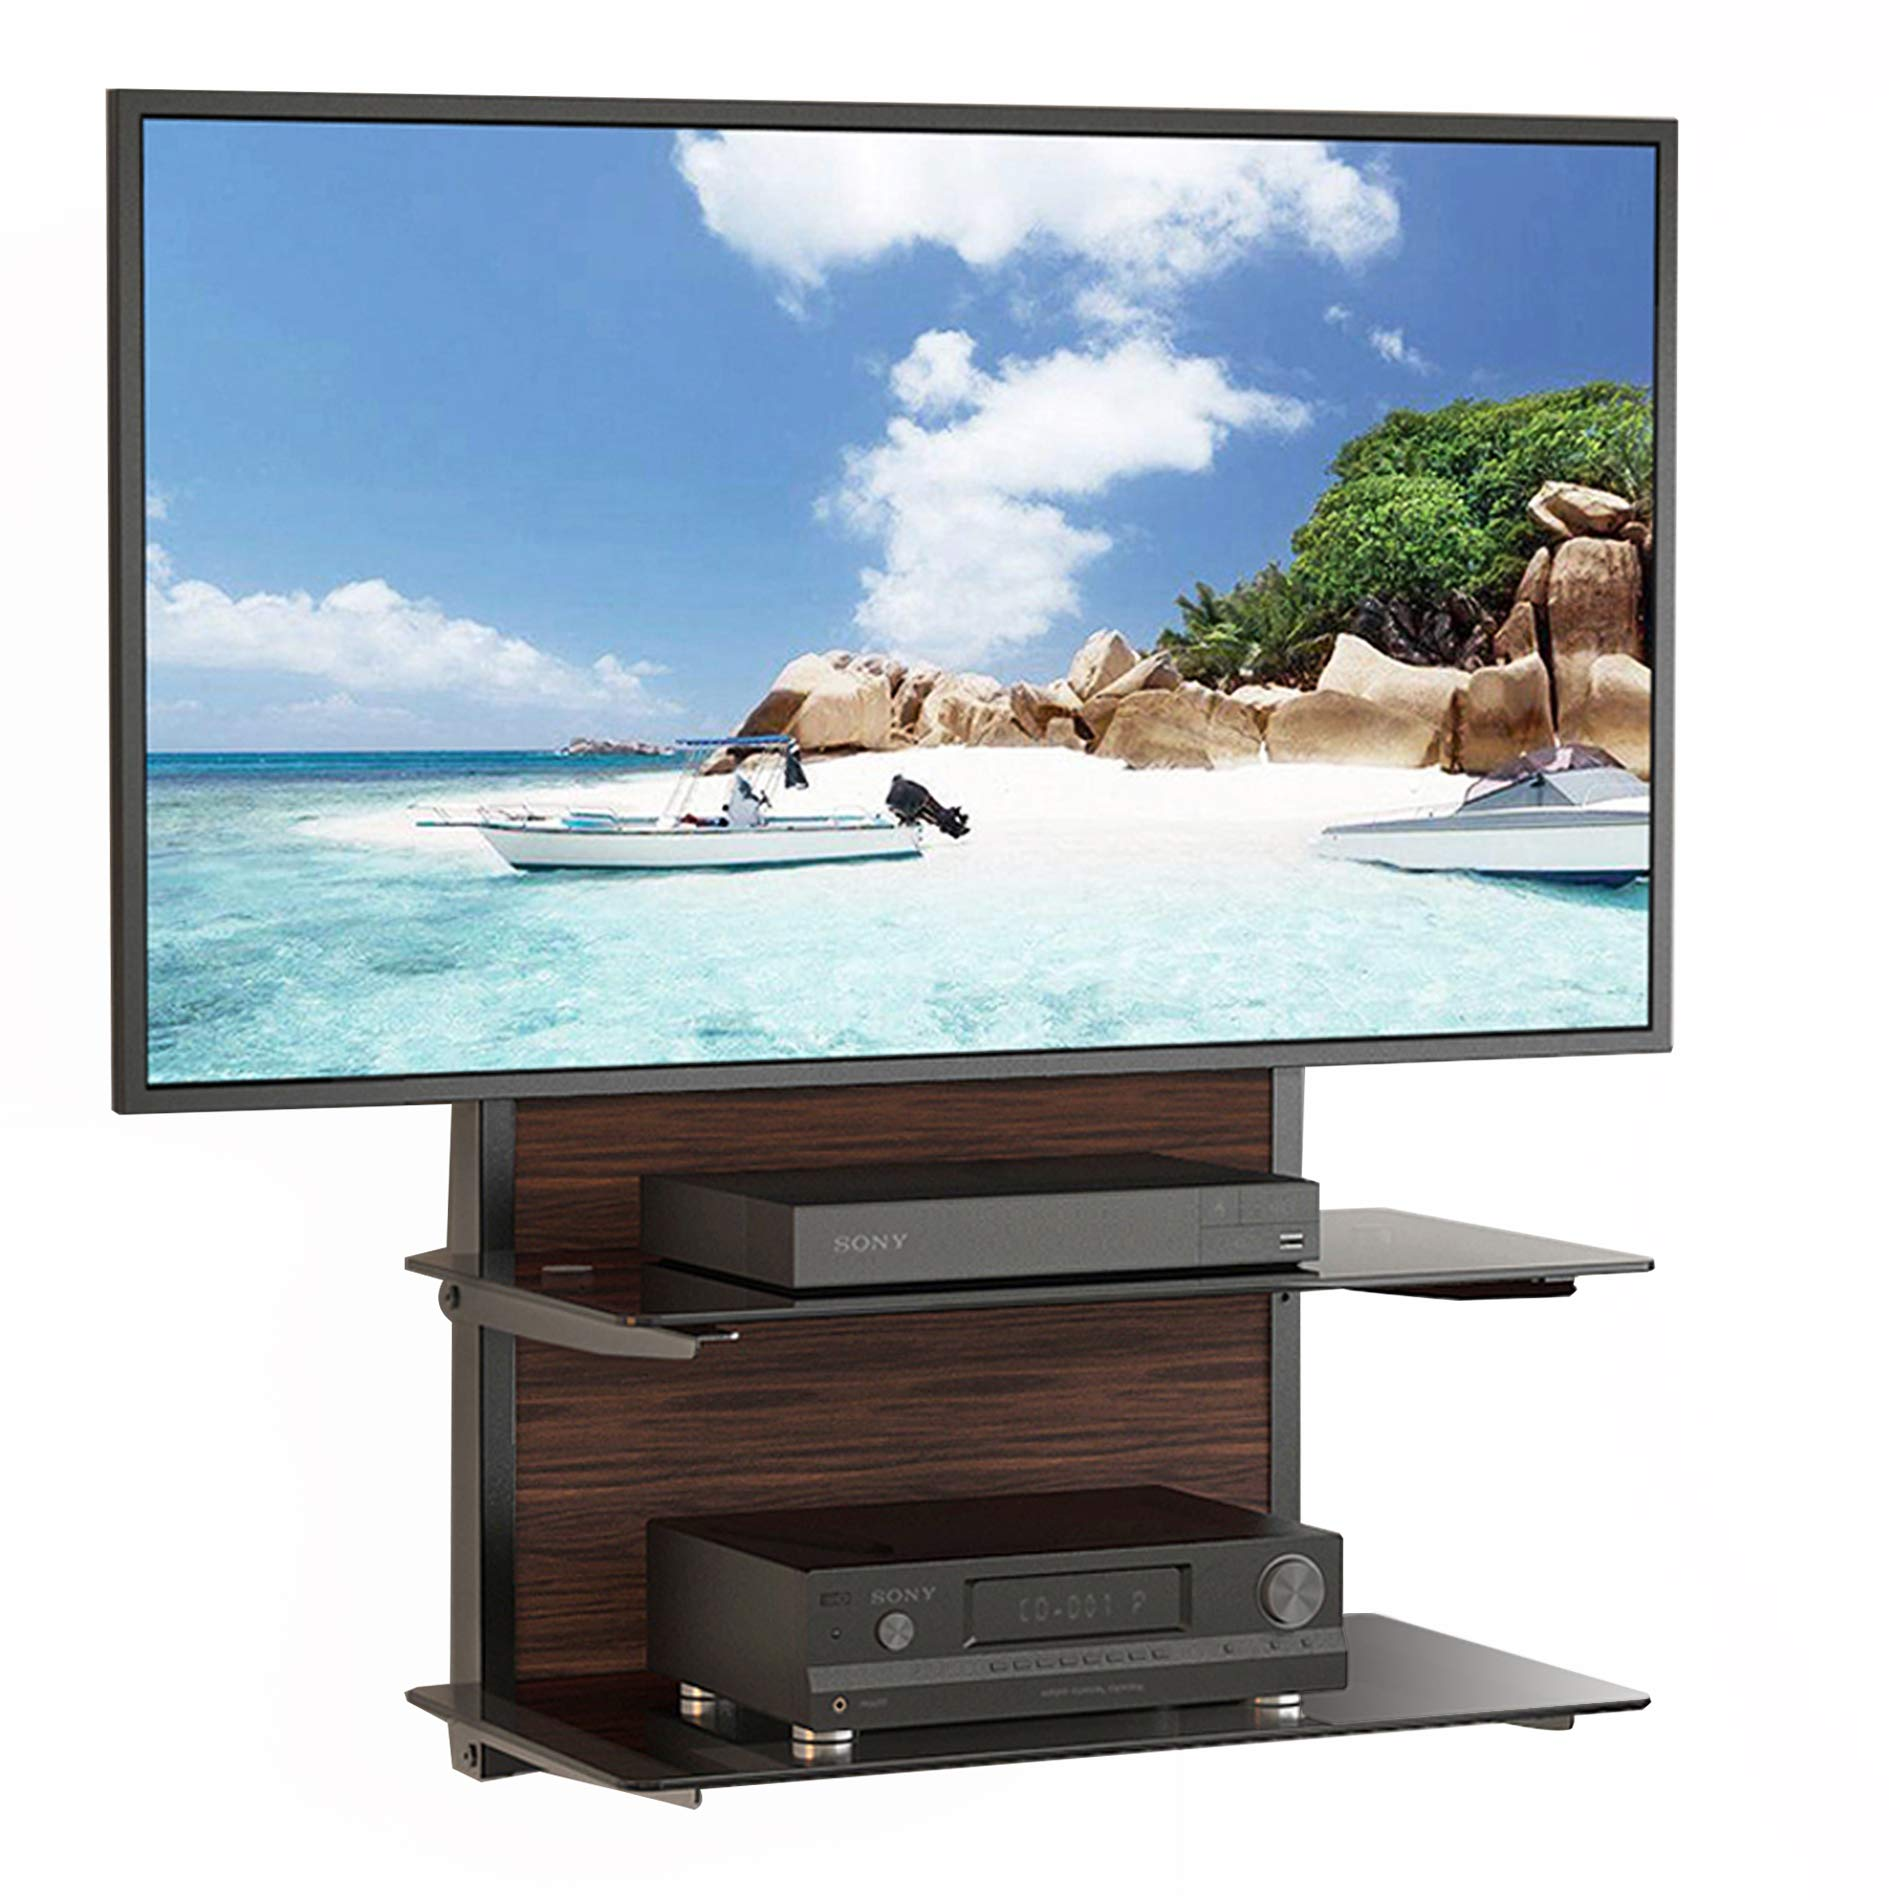 Fenge Fitueyes 2 Tier Wood Av Shelf Component Wall Mount with Tempered Glass Shelf for Dvd/xbox One/ps4/tv Component DS205401GB